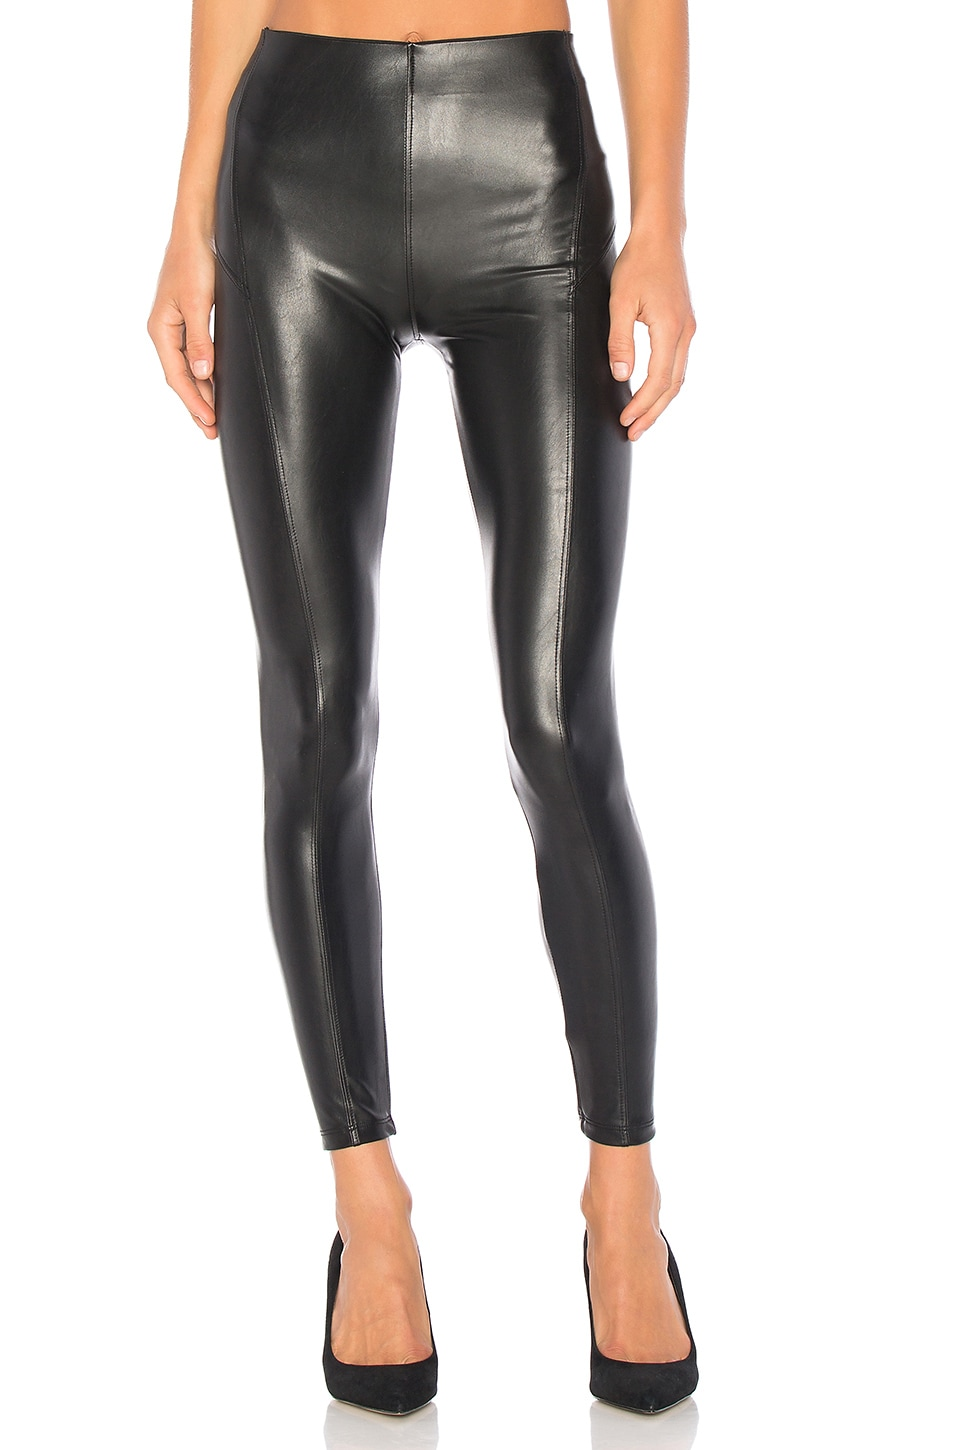 David Lerner Seamed High Rise Legging in Classic Black